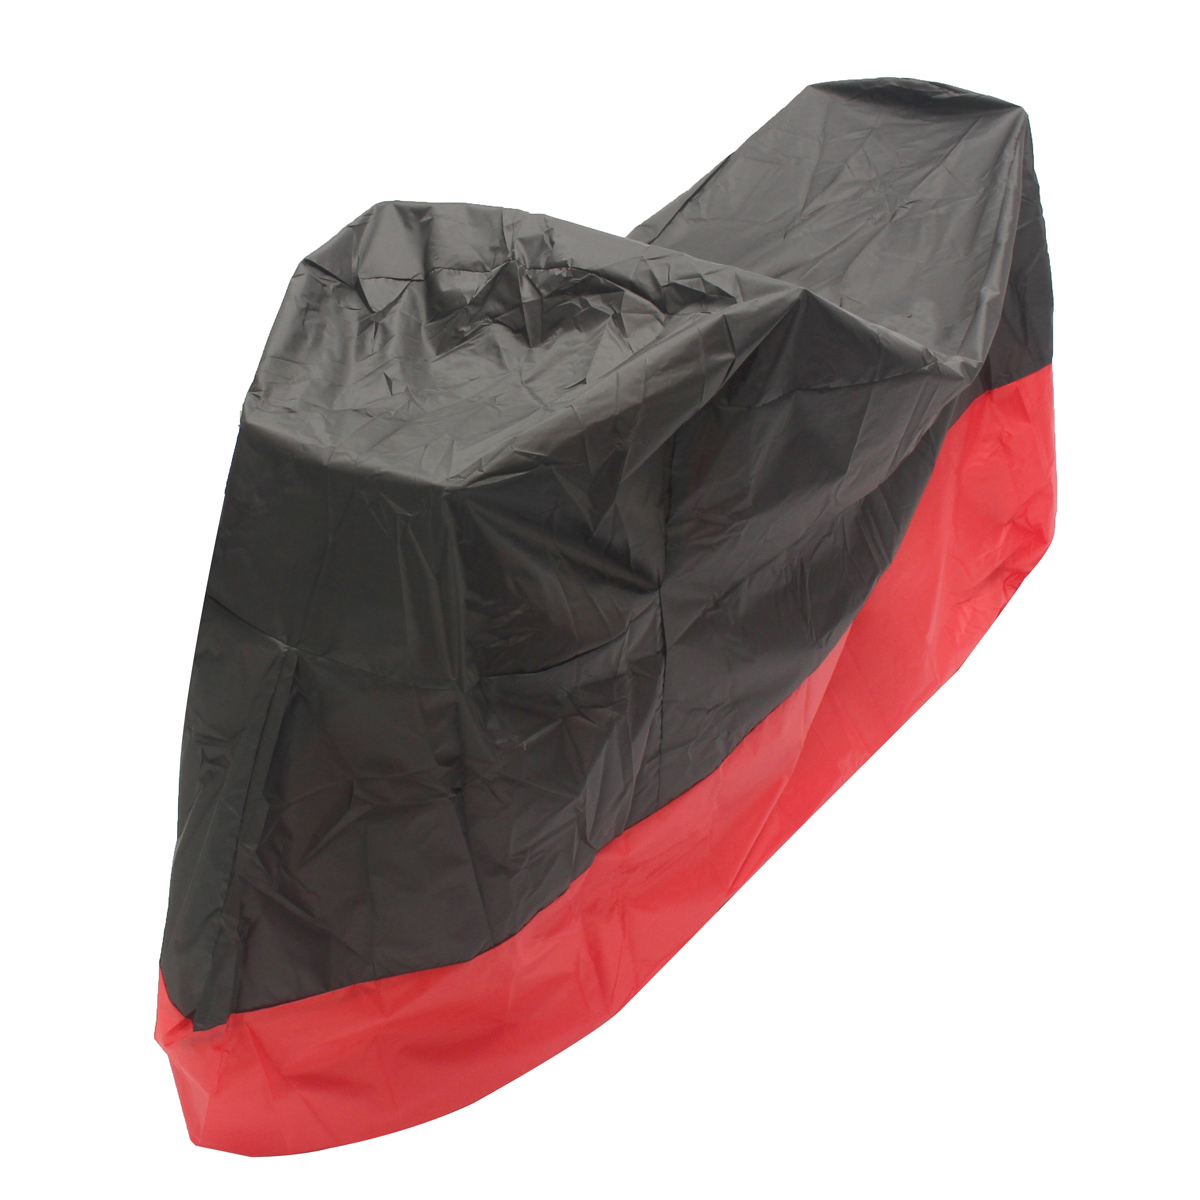 Waterproof Motorcycle Cover M L XL XXL 3XL 4XL Scooter Moped Rain UV Dust Cover